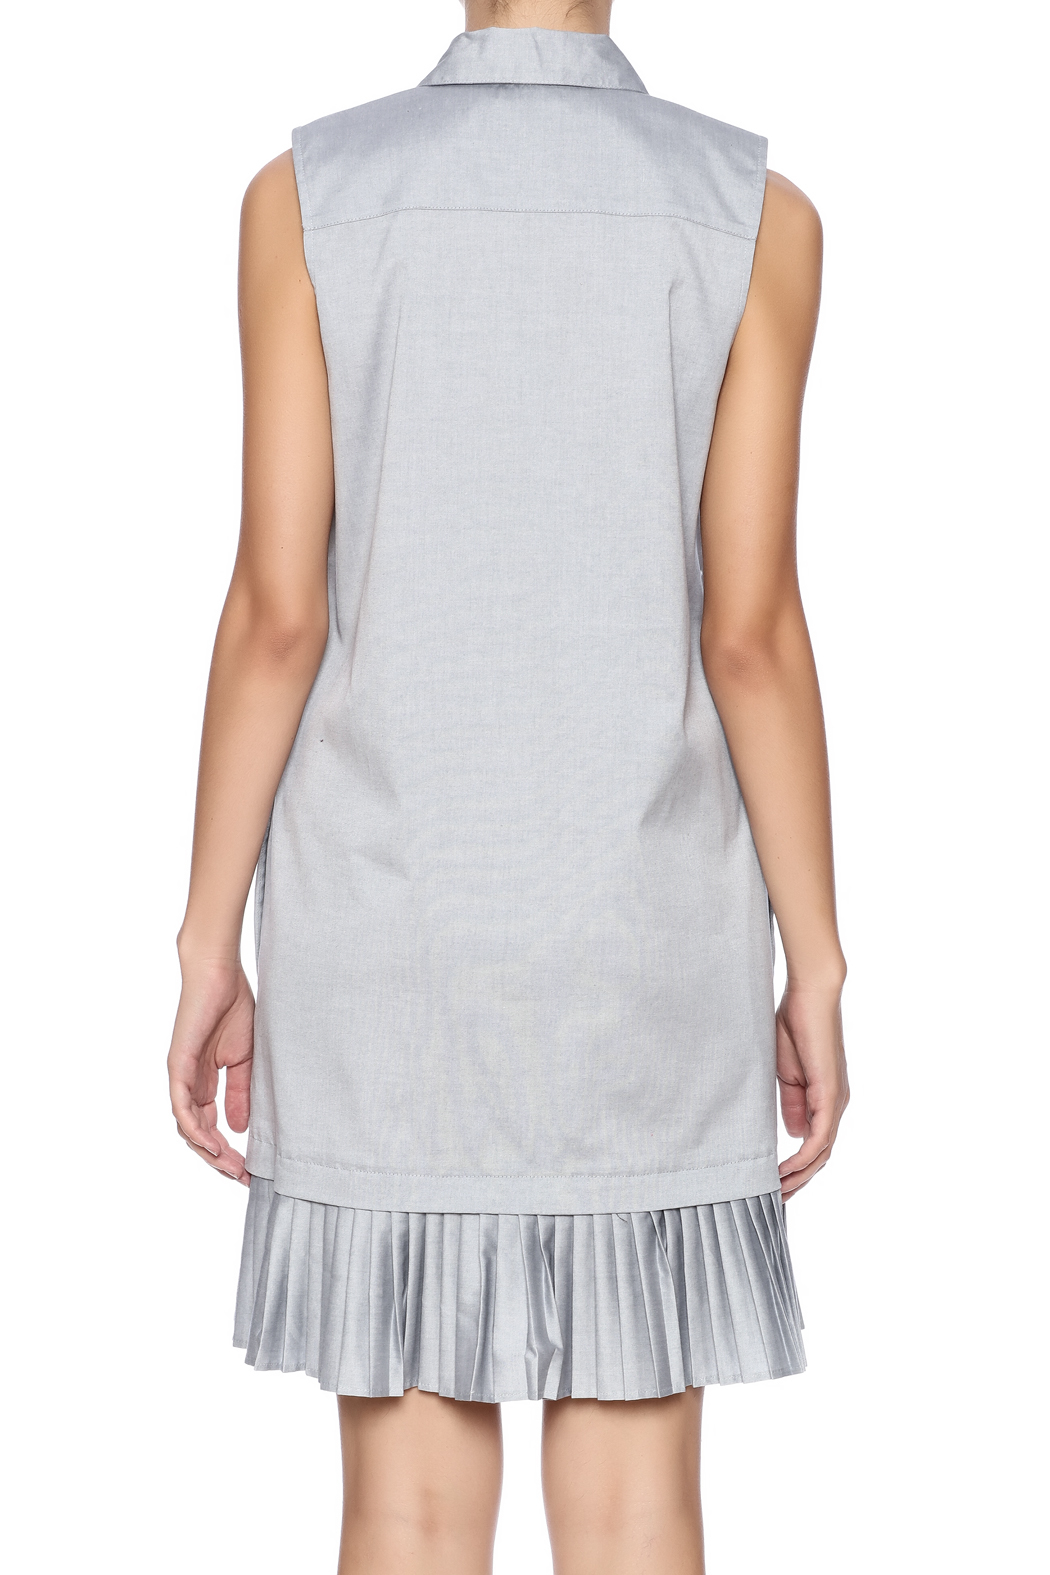 Prose & Poetry Pleat Shirt Dress - Back Cropped Image